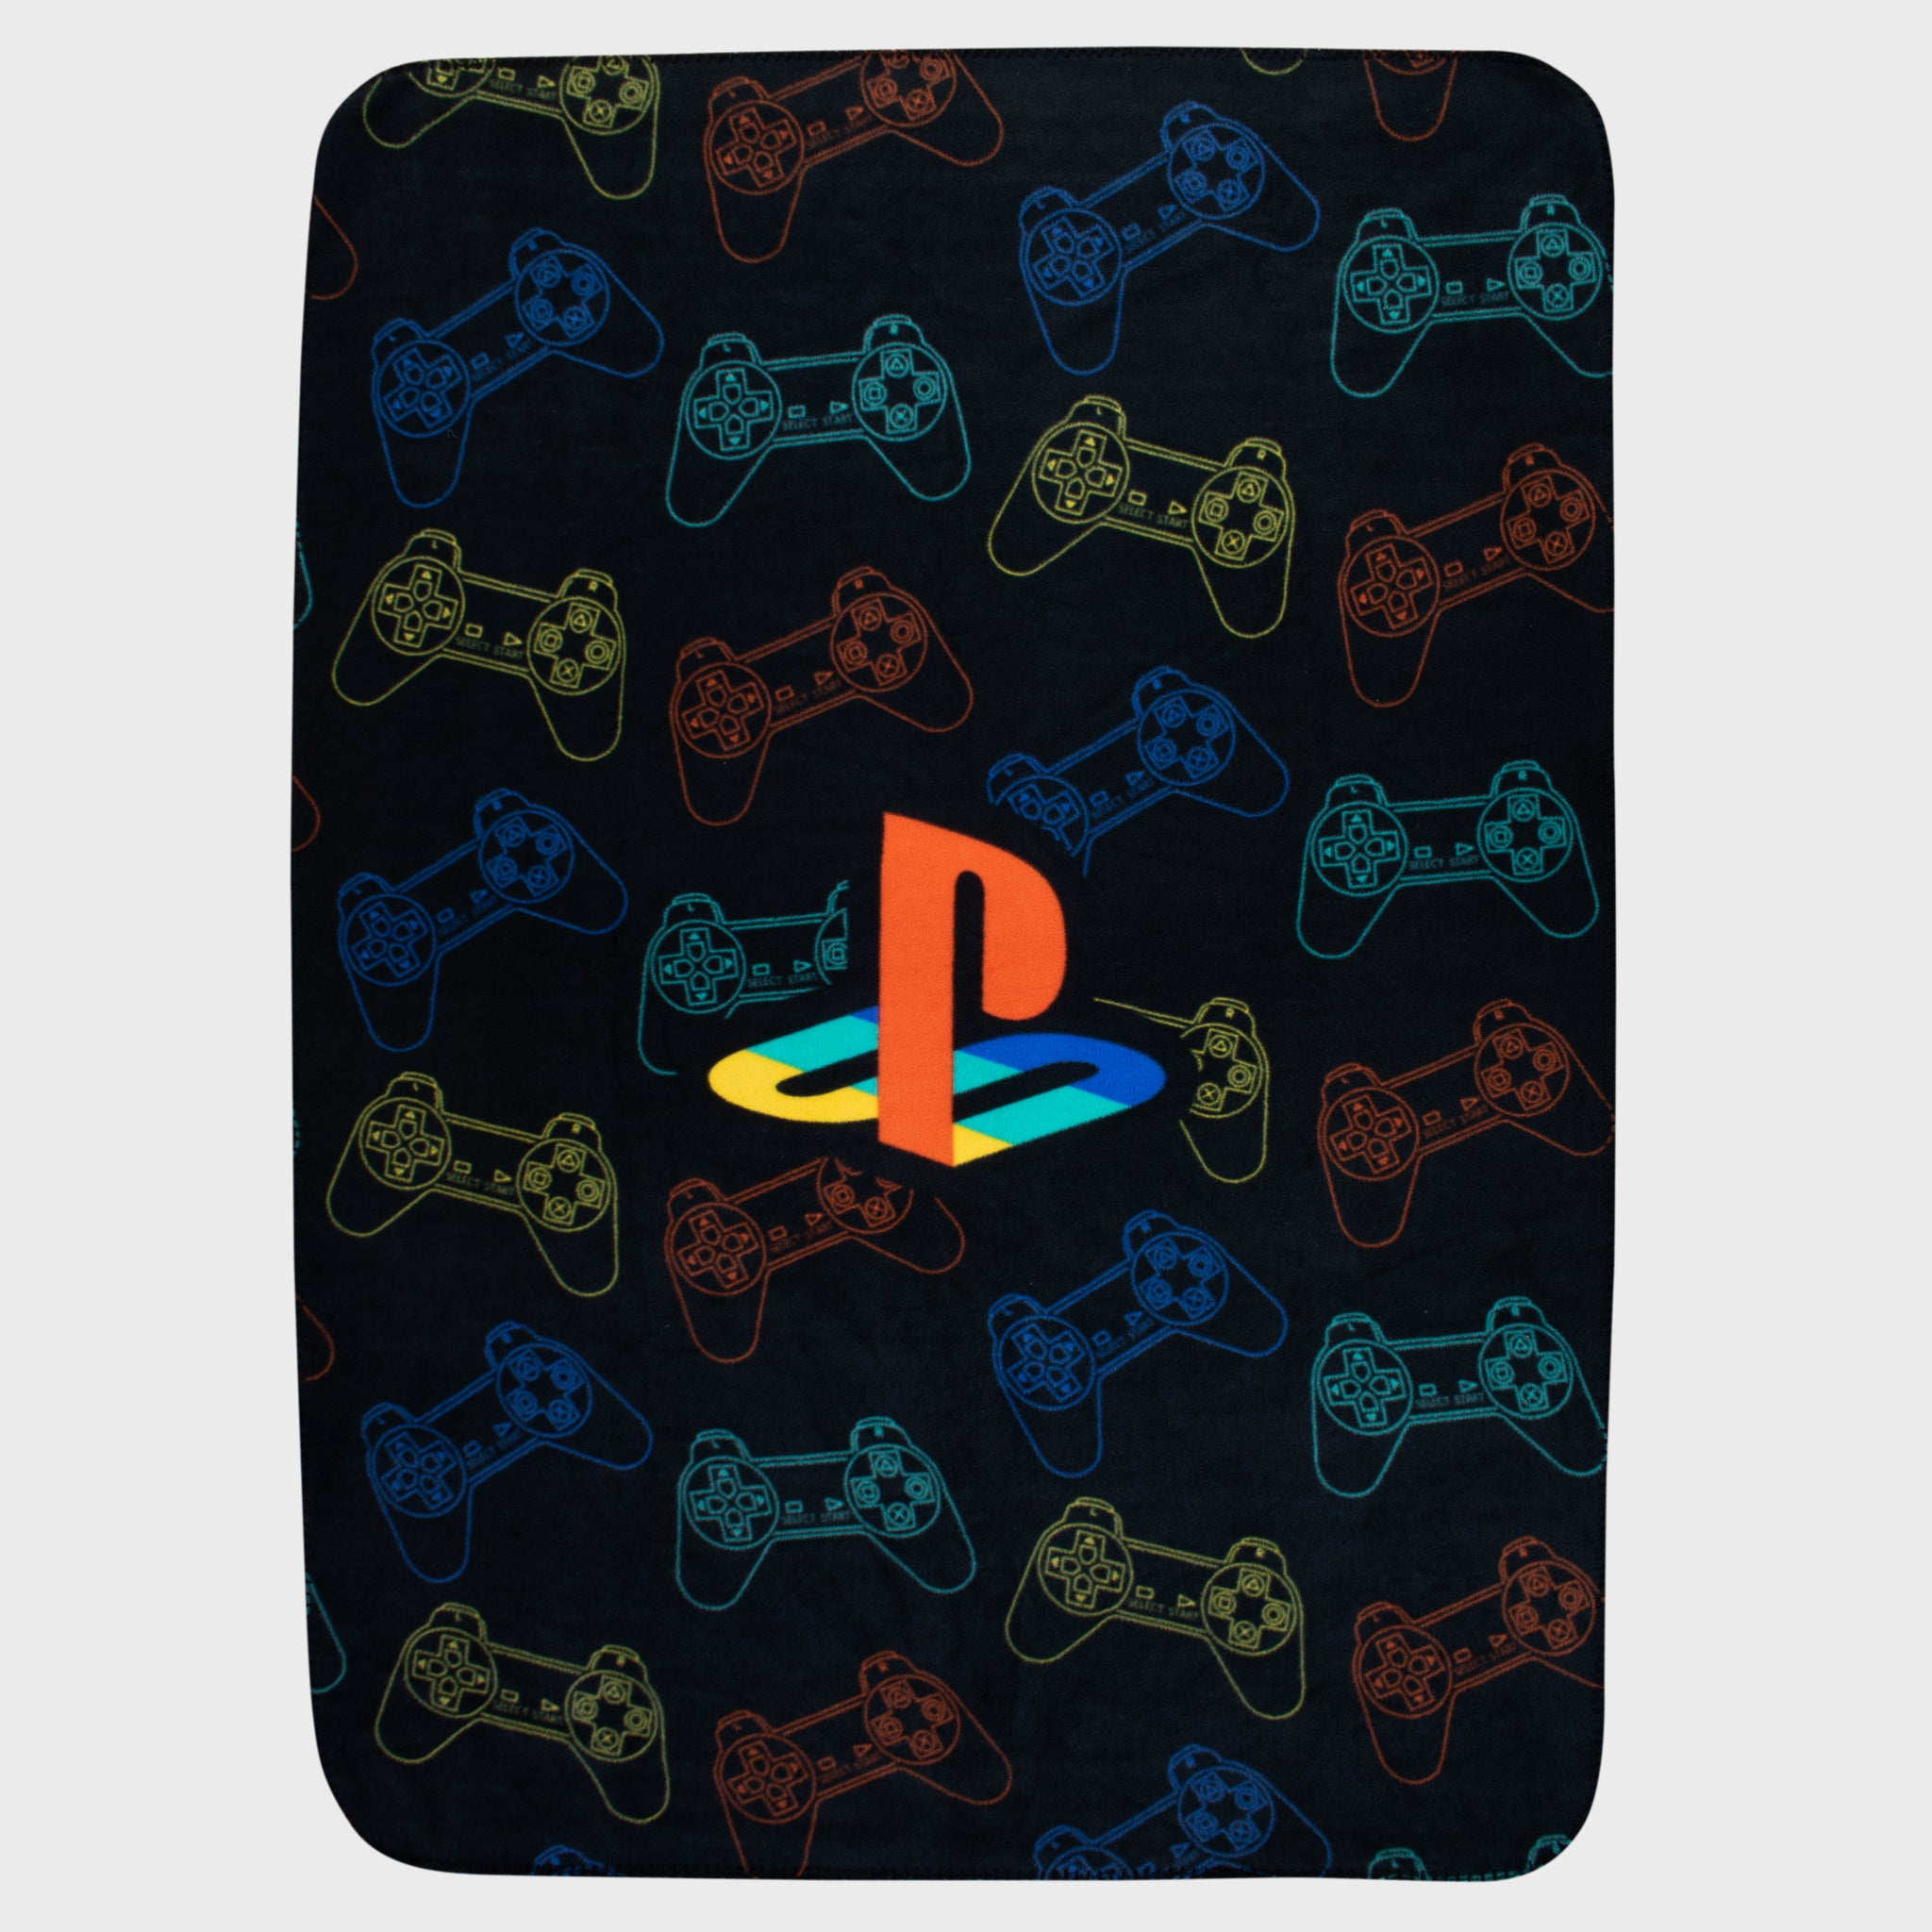 playstation ps4 ps video games console classic old school retro 90s gamestop retail box accessories collectibles exclusive culturefly throw blanket